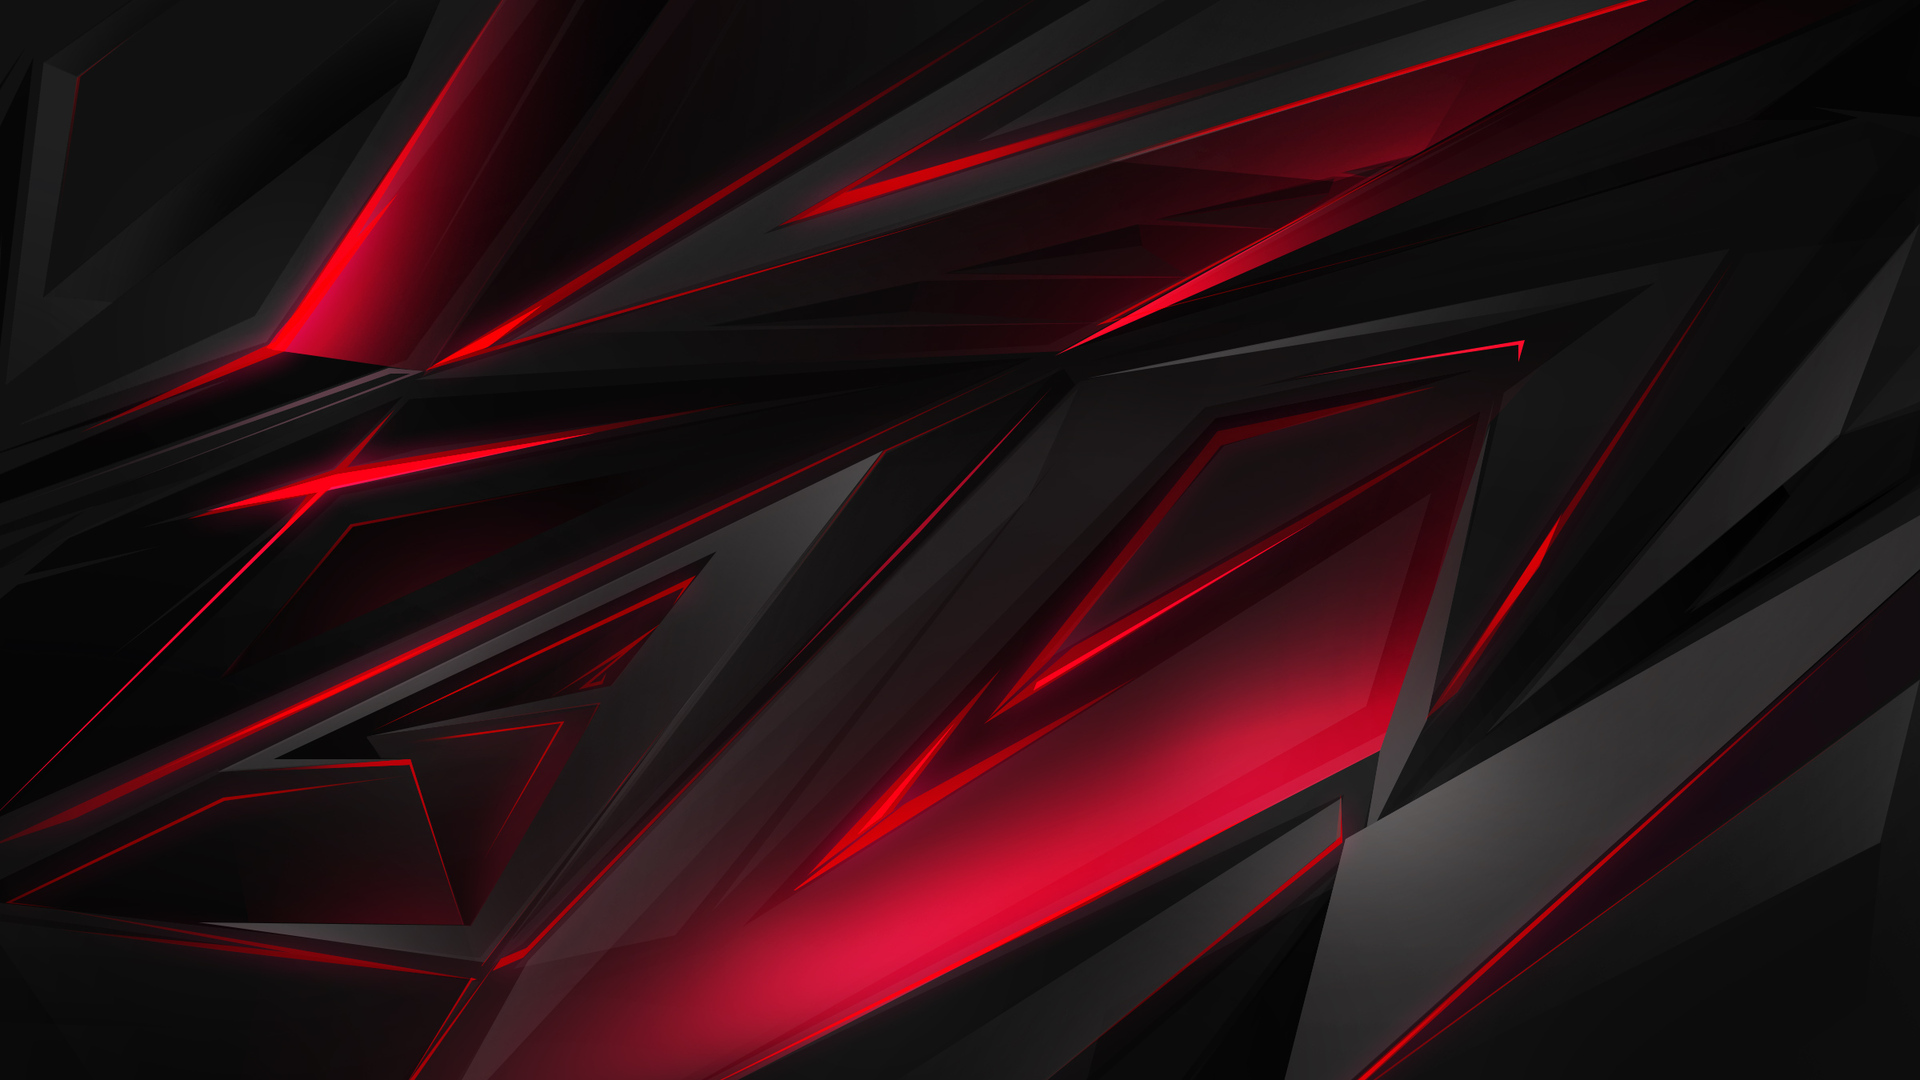 1920x1080 Polygonal Abstract Red Dark Background Laptop Full